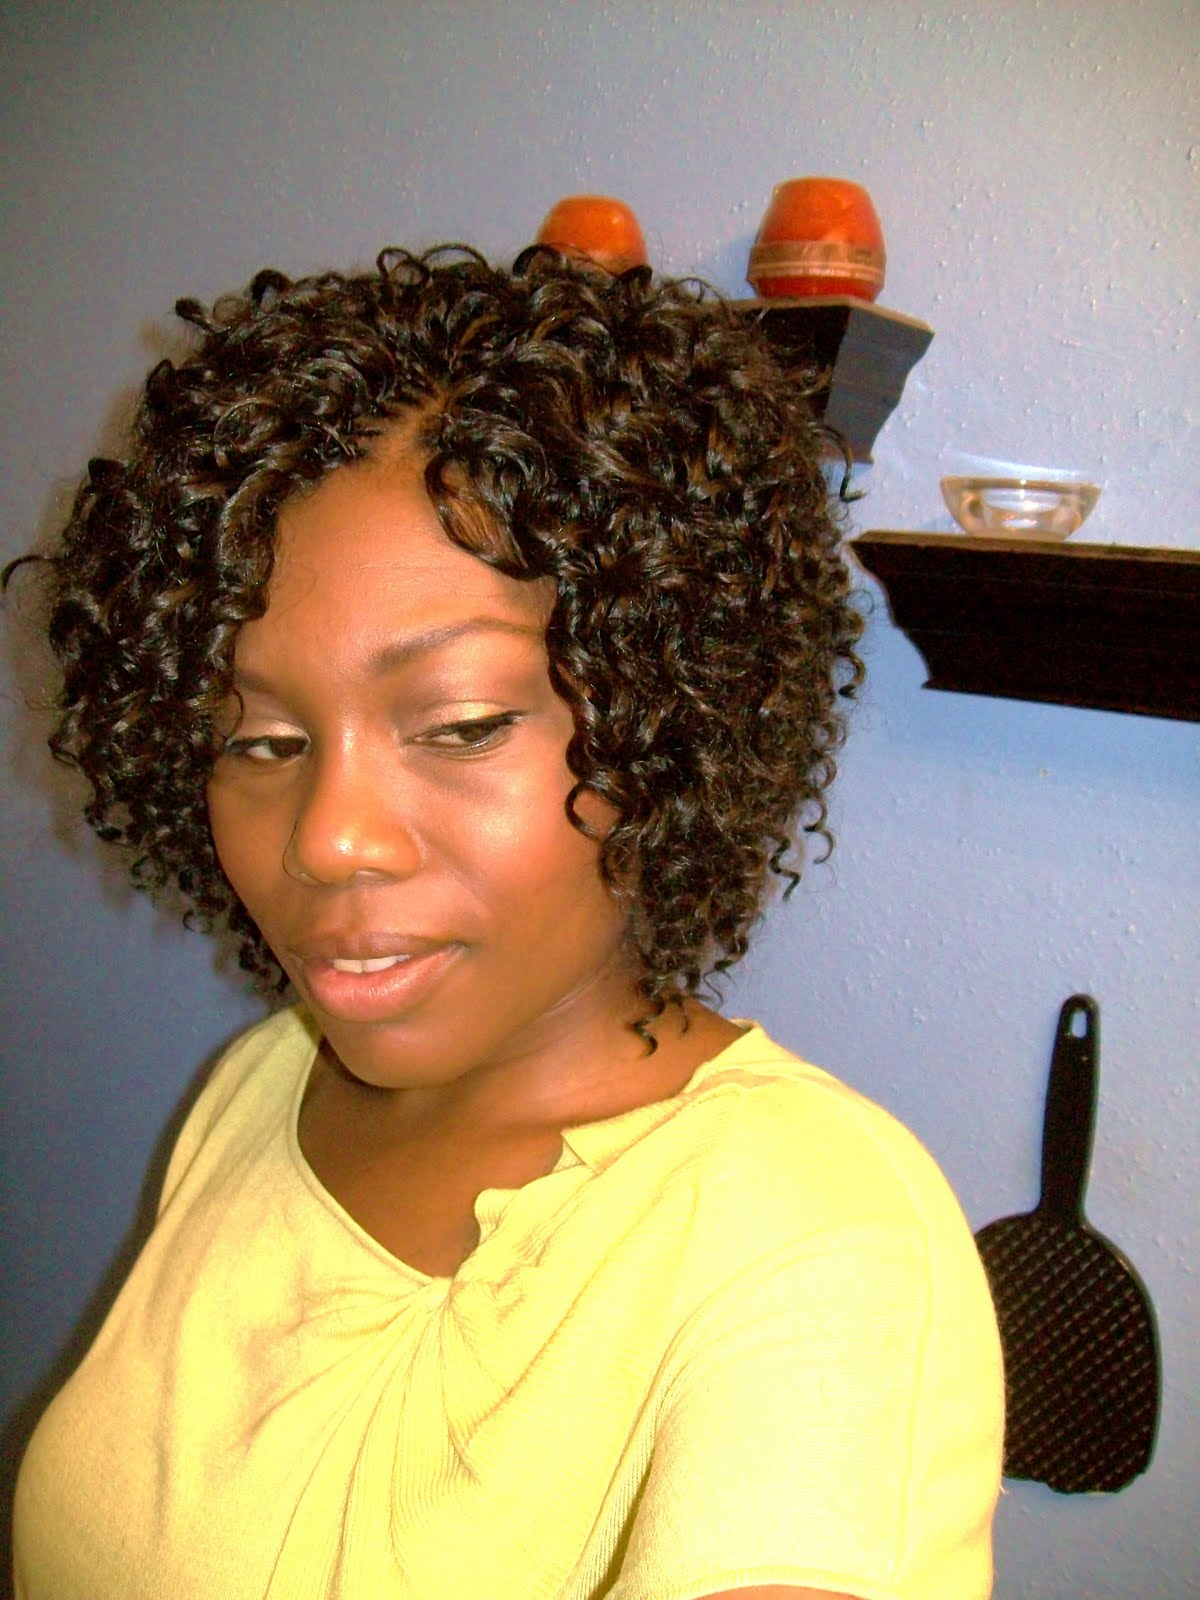 Crochet Natural Hair Styles : Protective style 13 months post - Crochet braids (FAV style)